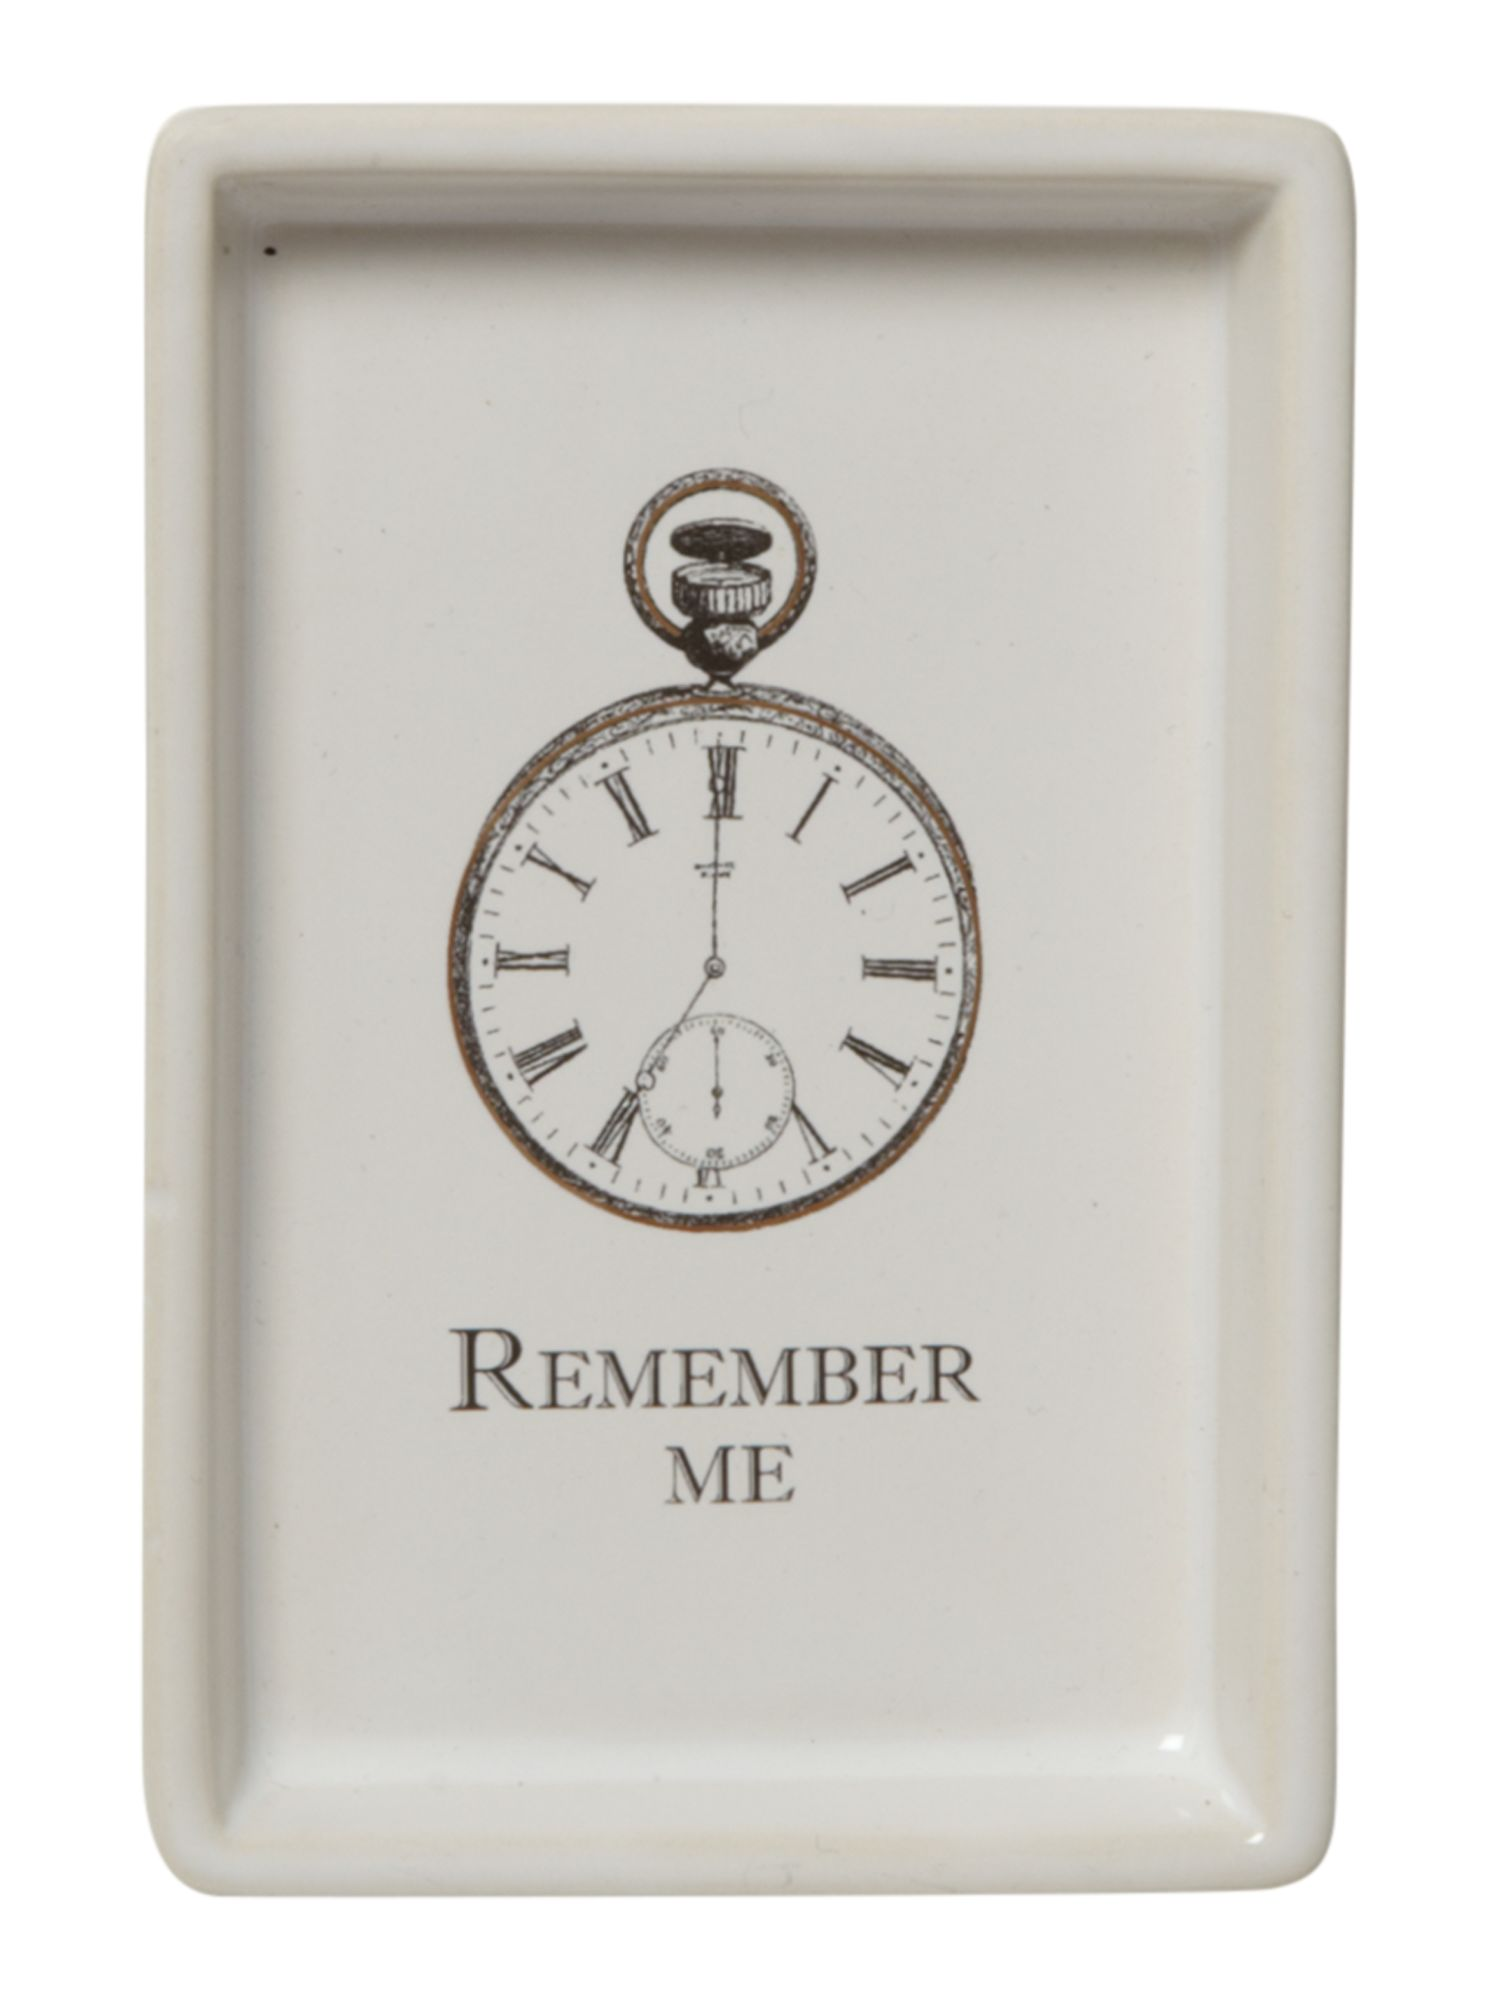 Remember me ceramic tray